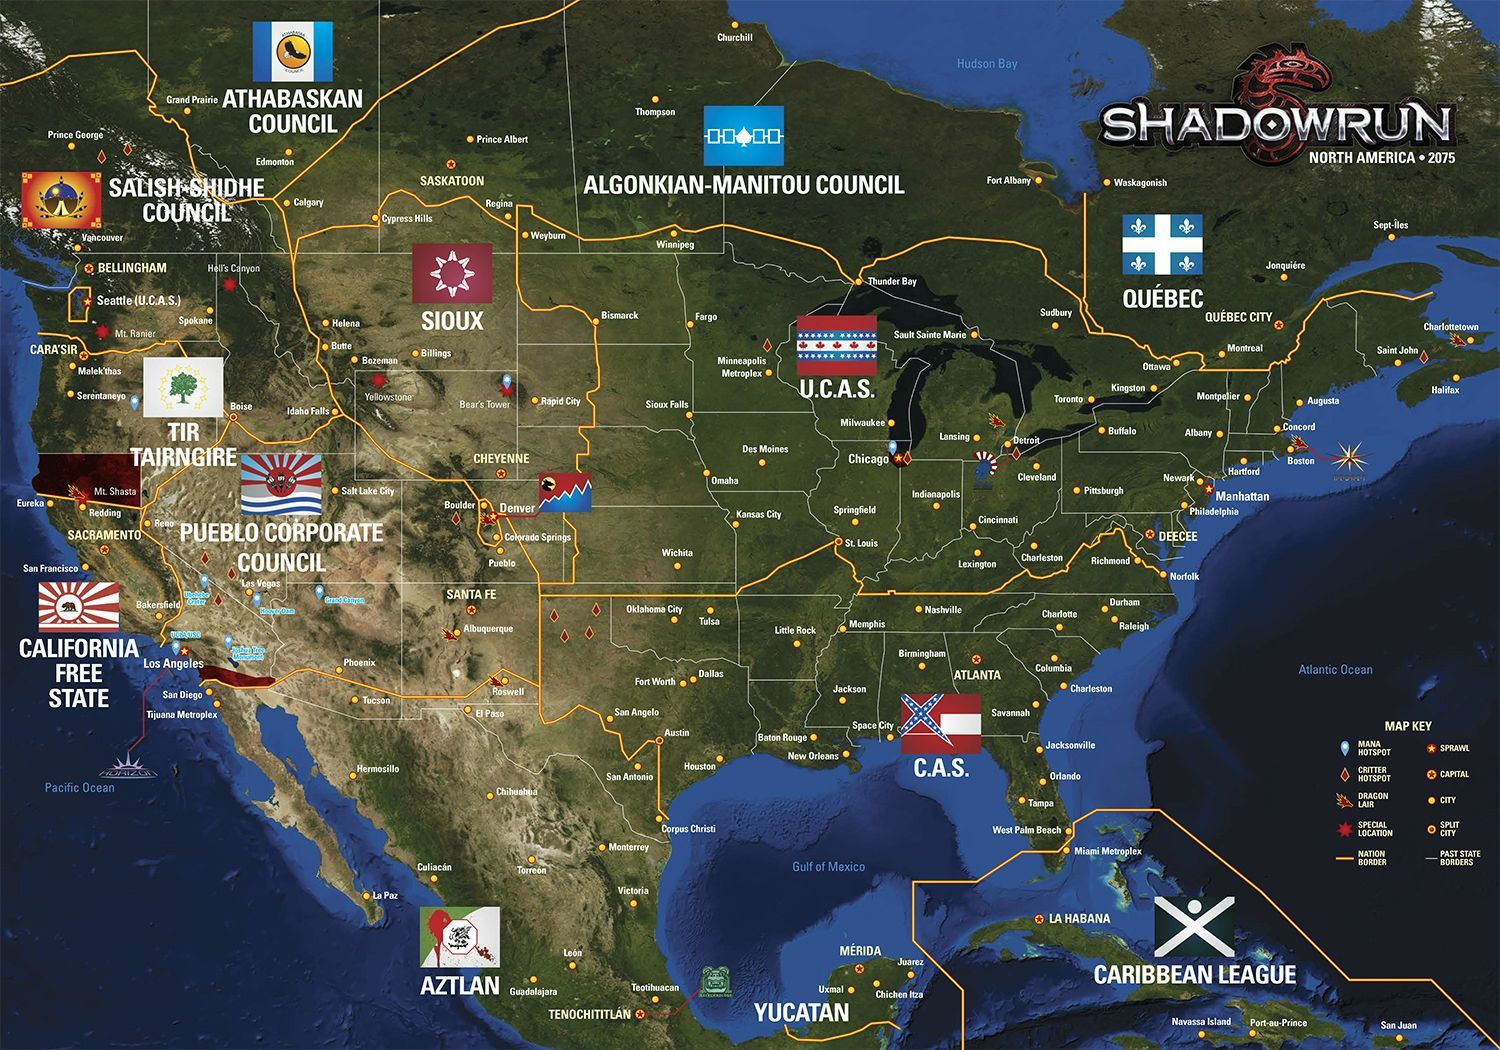 Shadowrun Map Of North America shadowrun North America nations map (With images)   Shadowrun